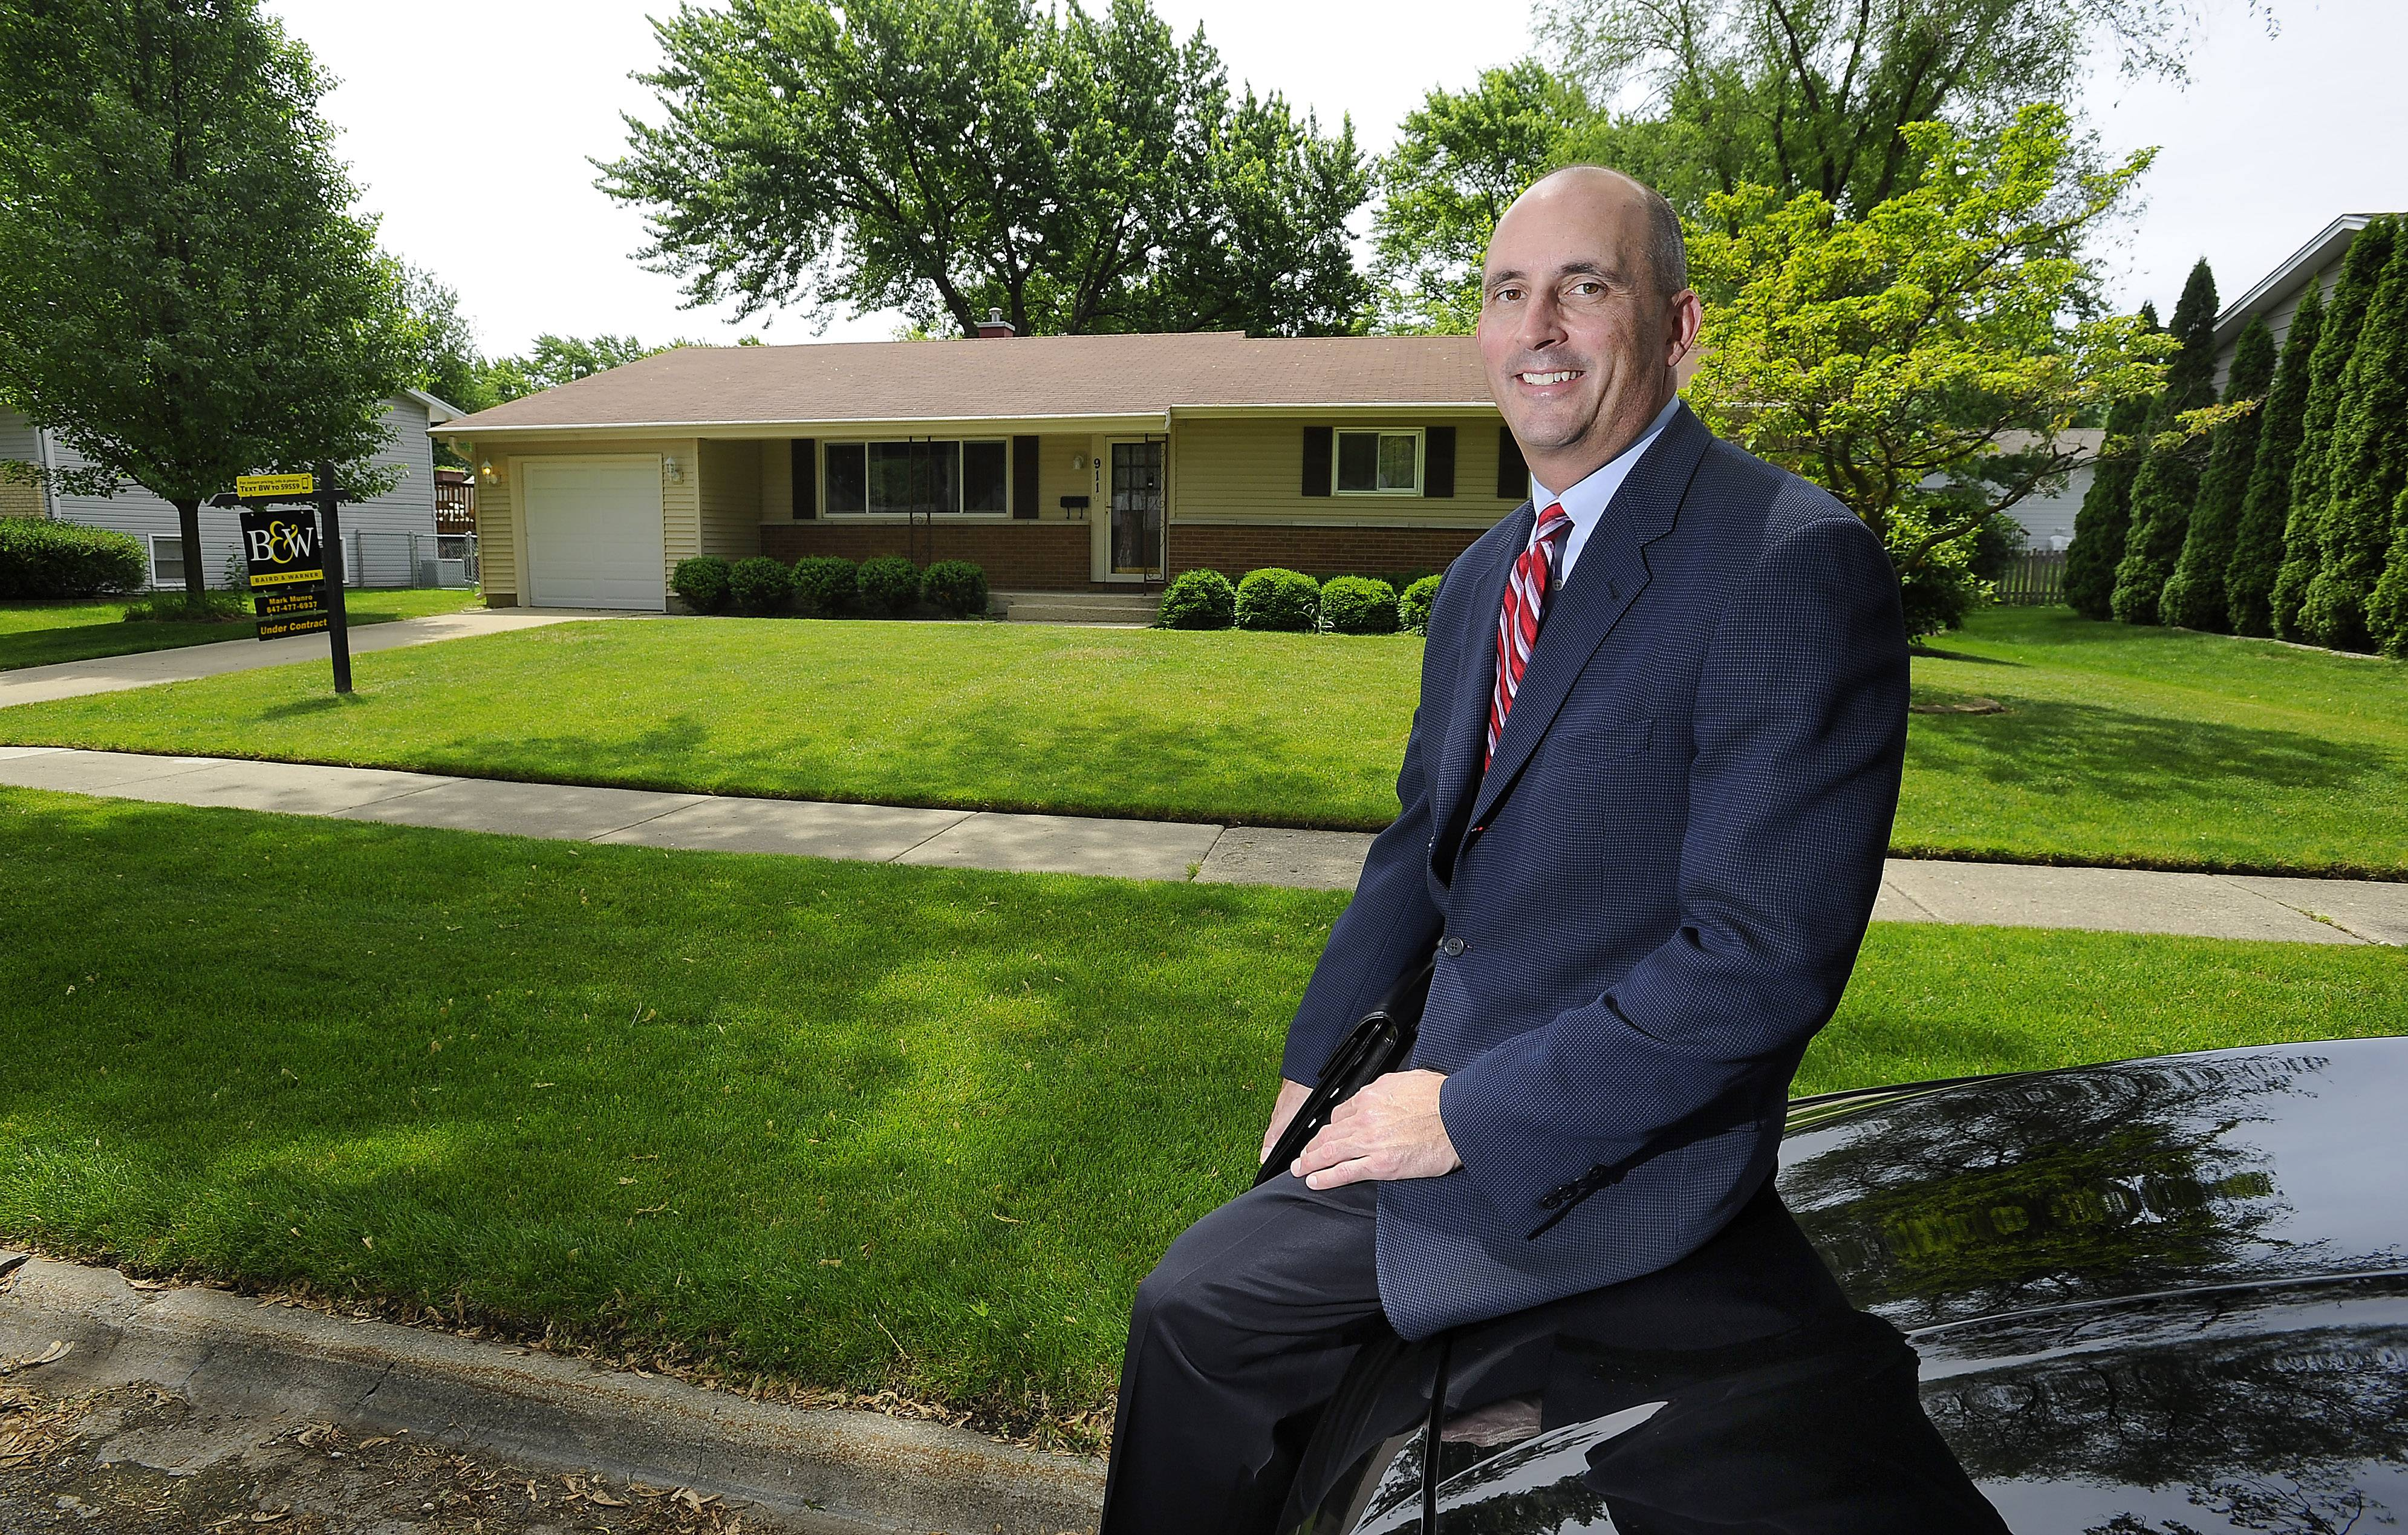 Realtor and broker Mark Munro of Baird & Warner, shown outside a home in Palatine he sold in two days, says the housing market has changed in the past year.